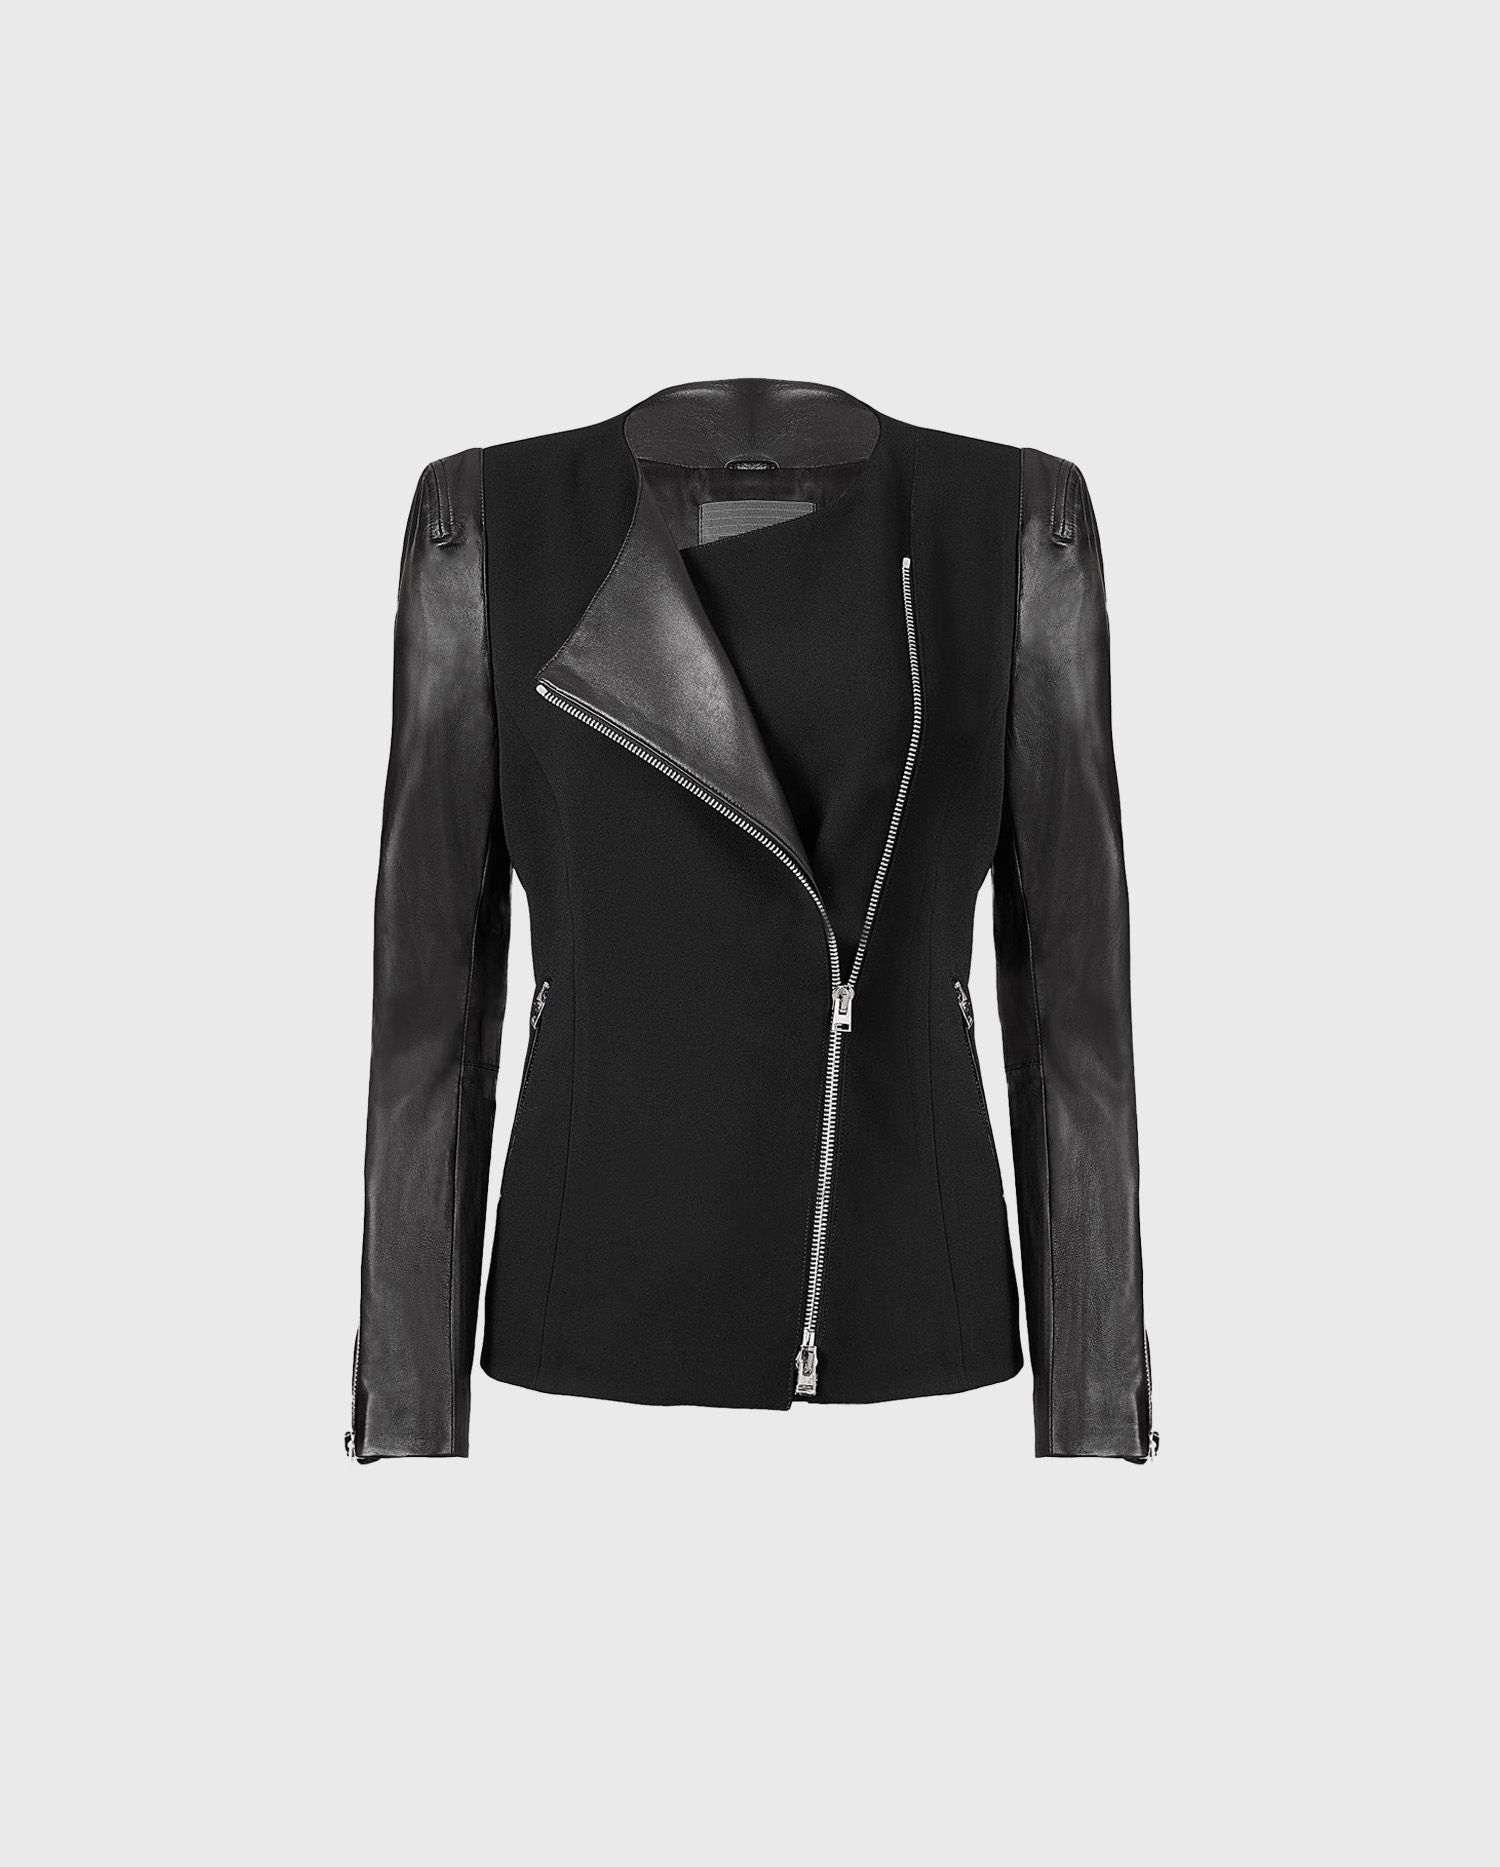 Add the FATINE black leather jacket your wardrobe for a chic and easy silhoutte that will showcase your great sense of style